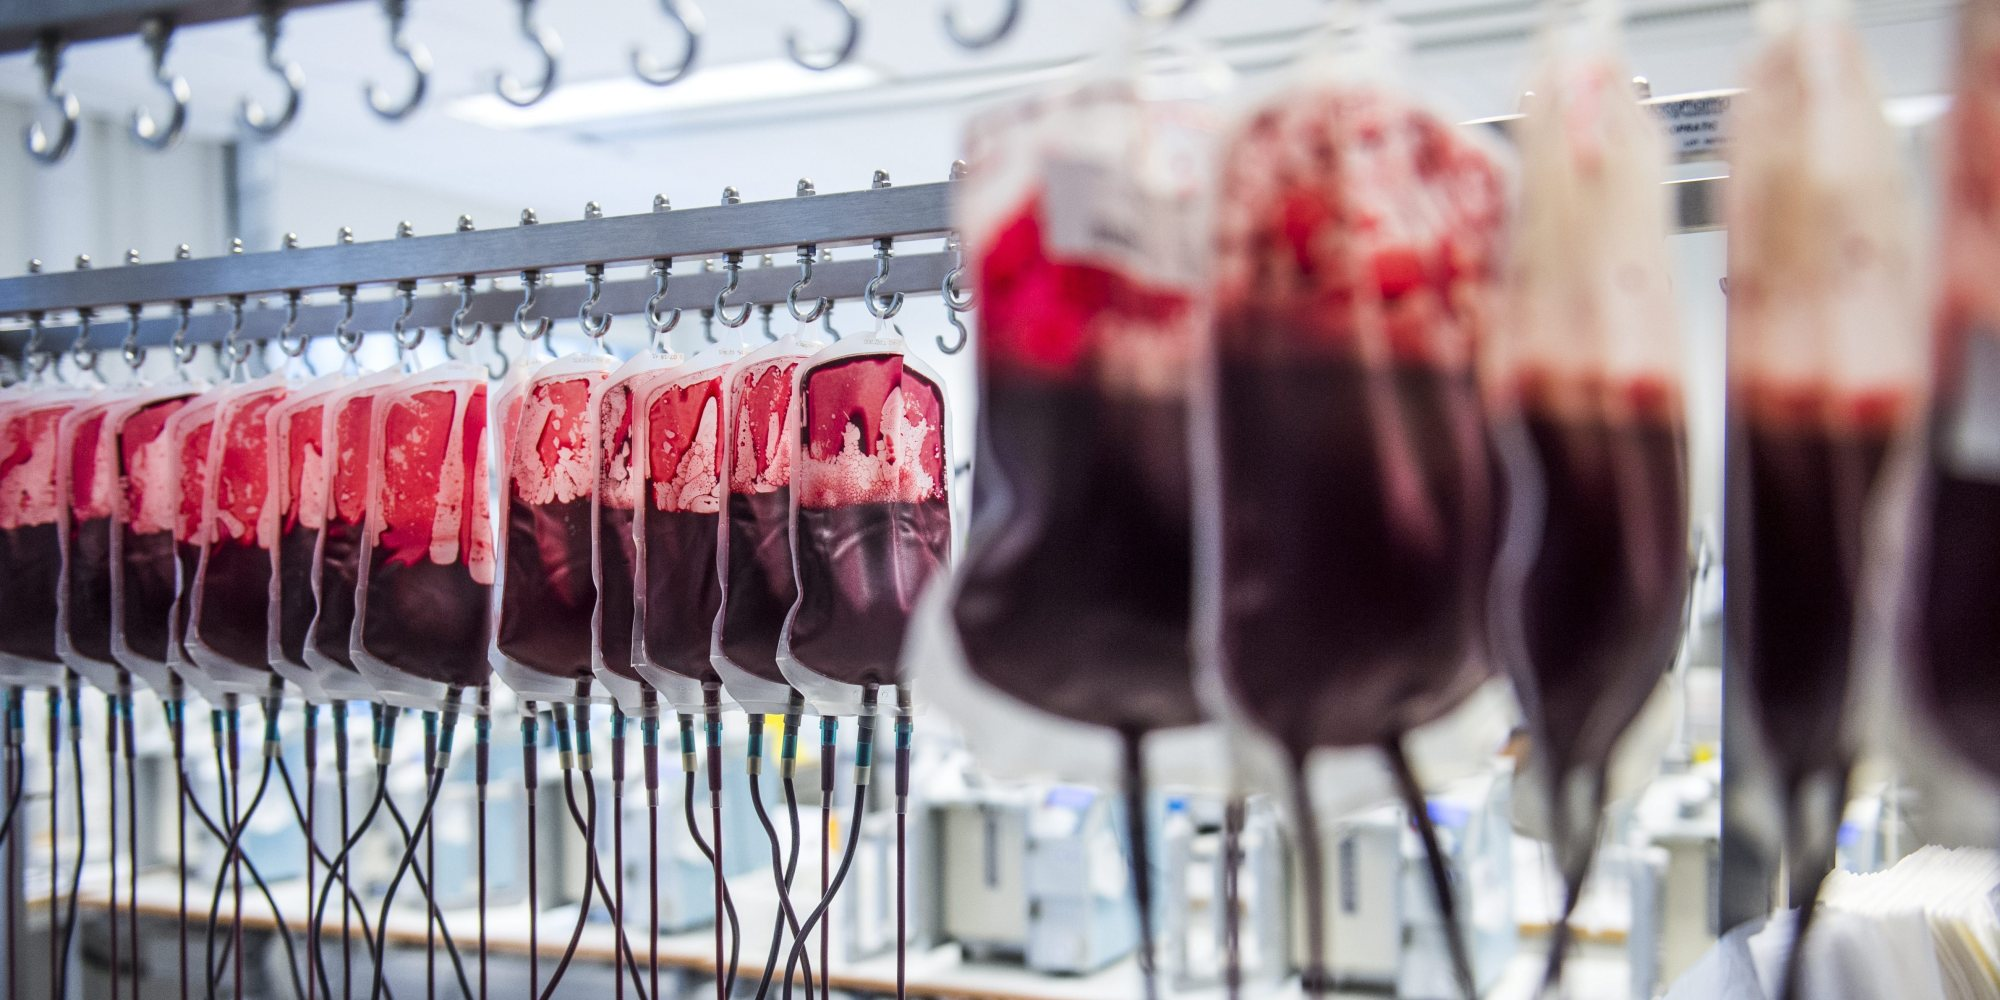 STOCKHOLM 20160406 The blood bank of the Karolinska University hospital in Huddinge, Sweden. Bood bags hangs to isolate white blood cells.   Foto: Marcus Ericsson / TT / Kod 11470 blood bags, blood donor, blood type, blood group,